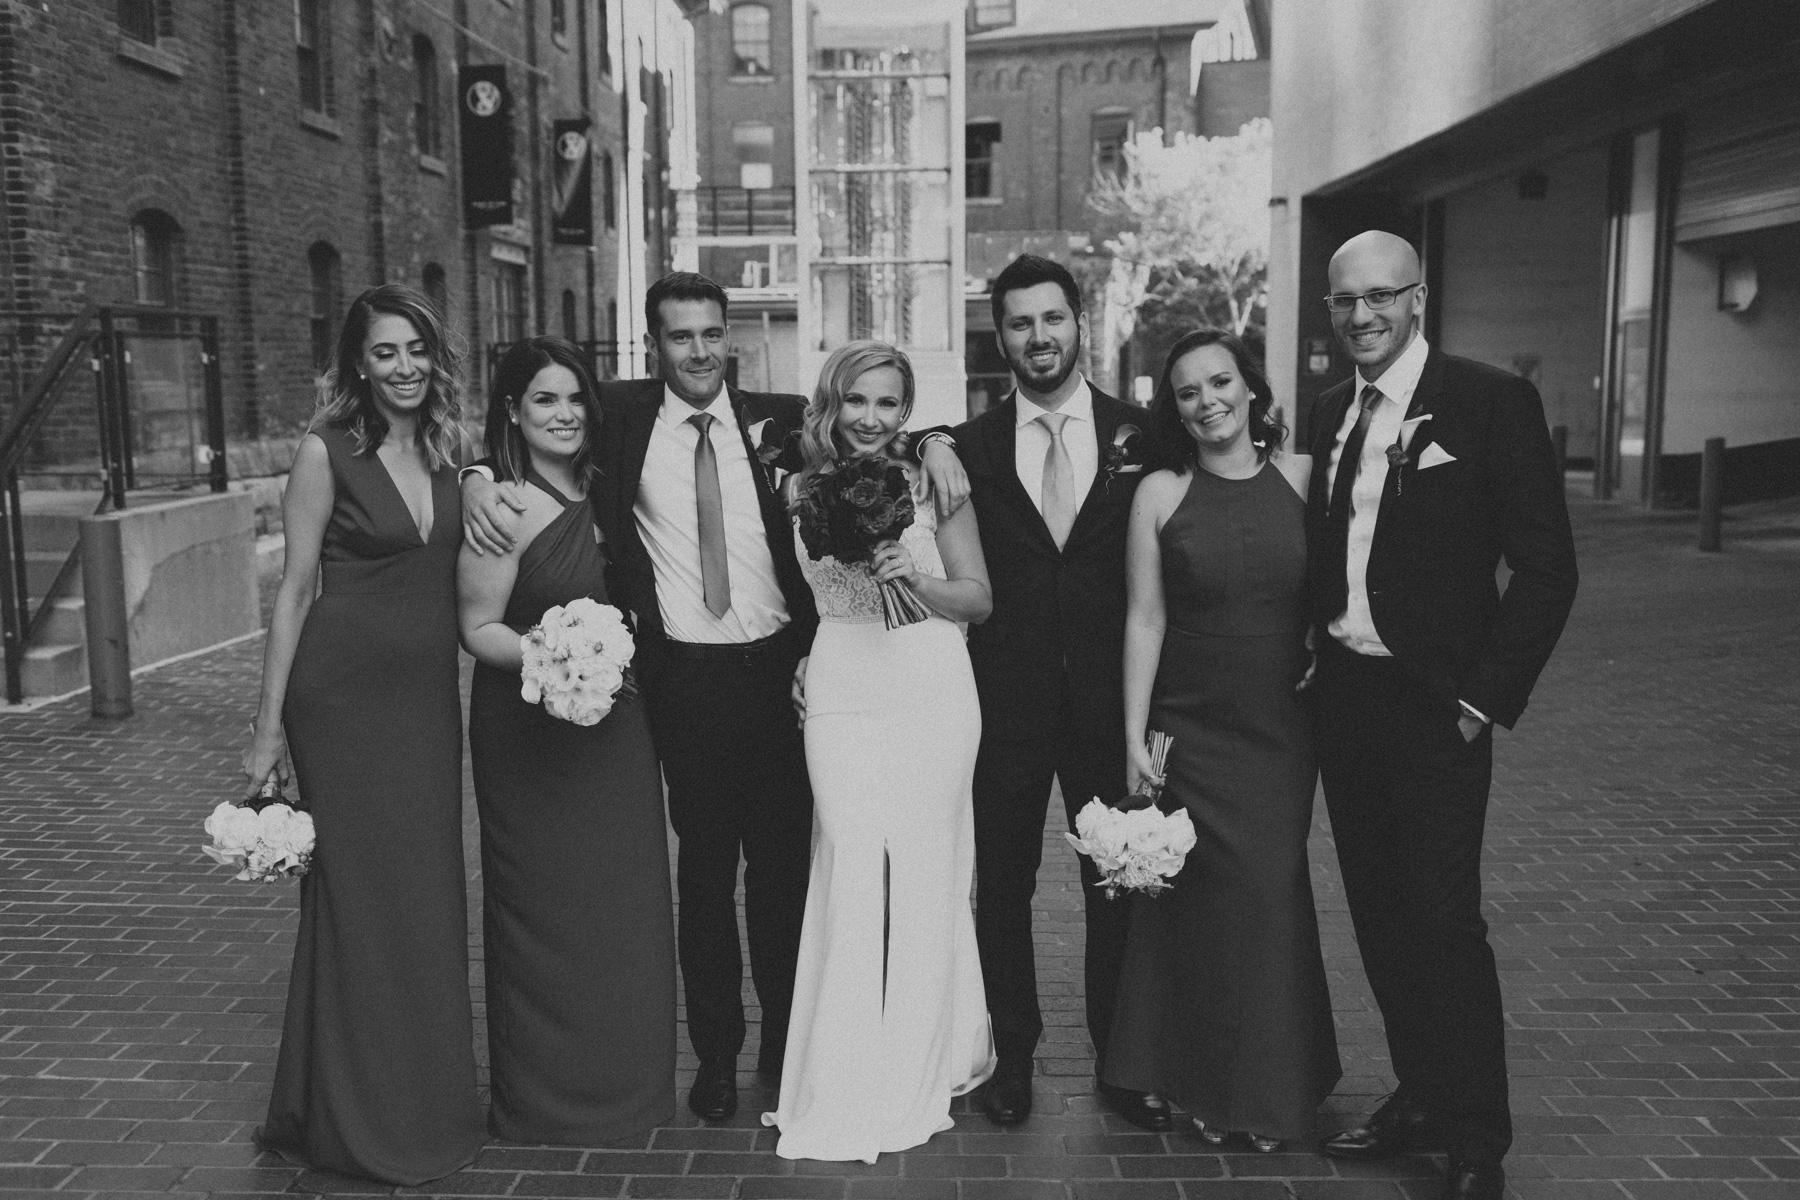 Thompson-Landry-Gallery-wedding-photos-Toronto-by-Sam-Wong-of-Artanis-Collective-Polina-Zarko_0021.jpg